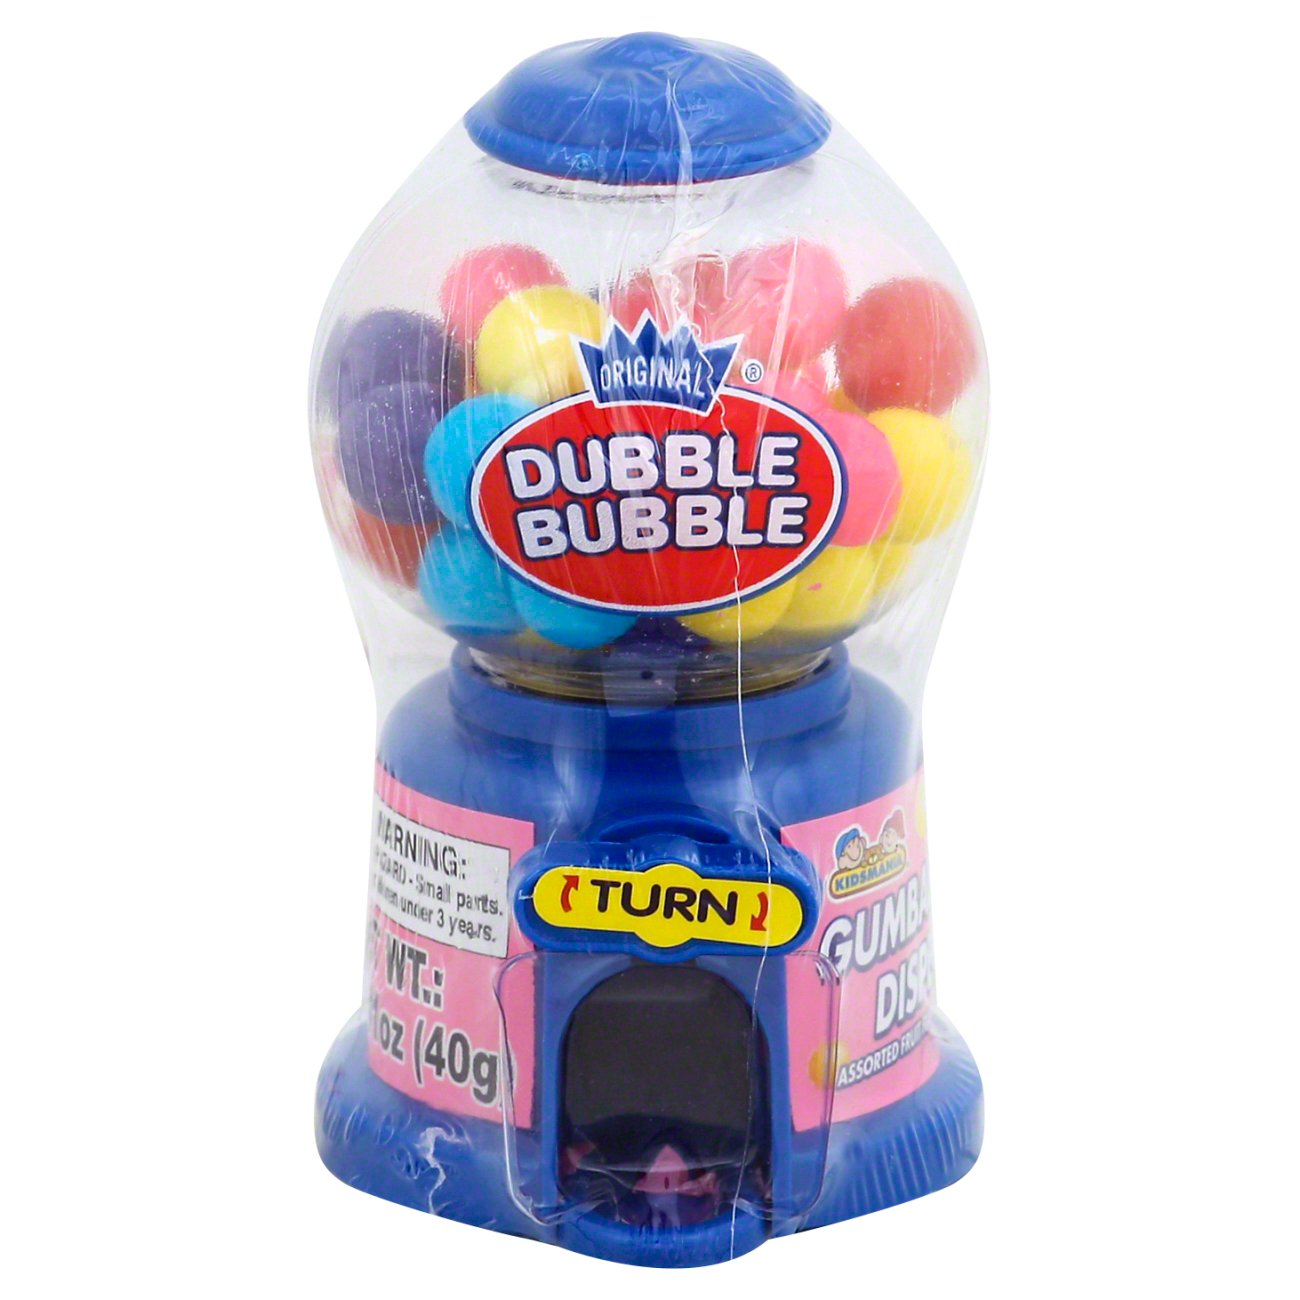 Bubble Gum Slot Machine Cakes